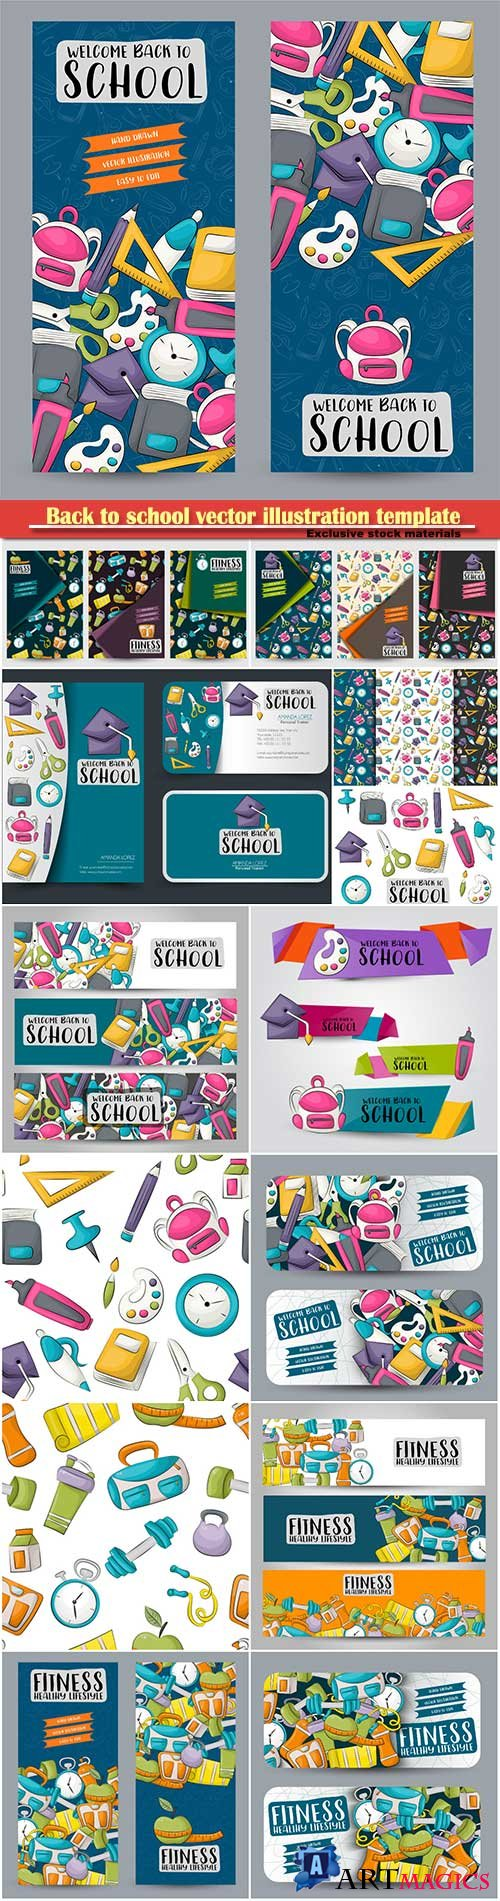 Back to school vector illustration, fitness and healthy lifestyle